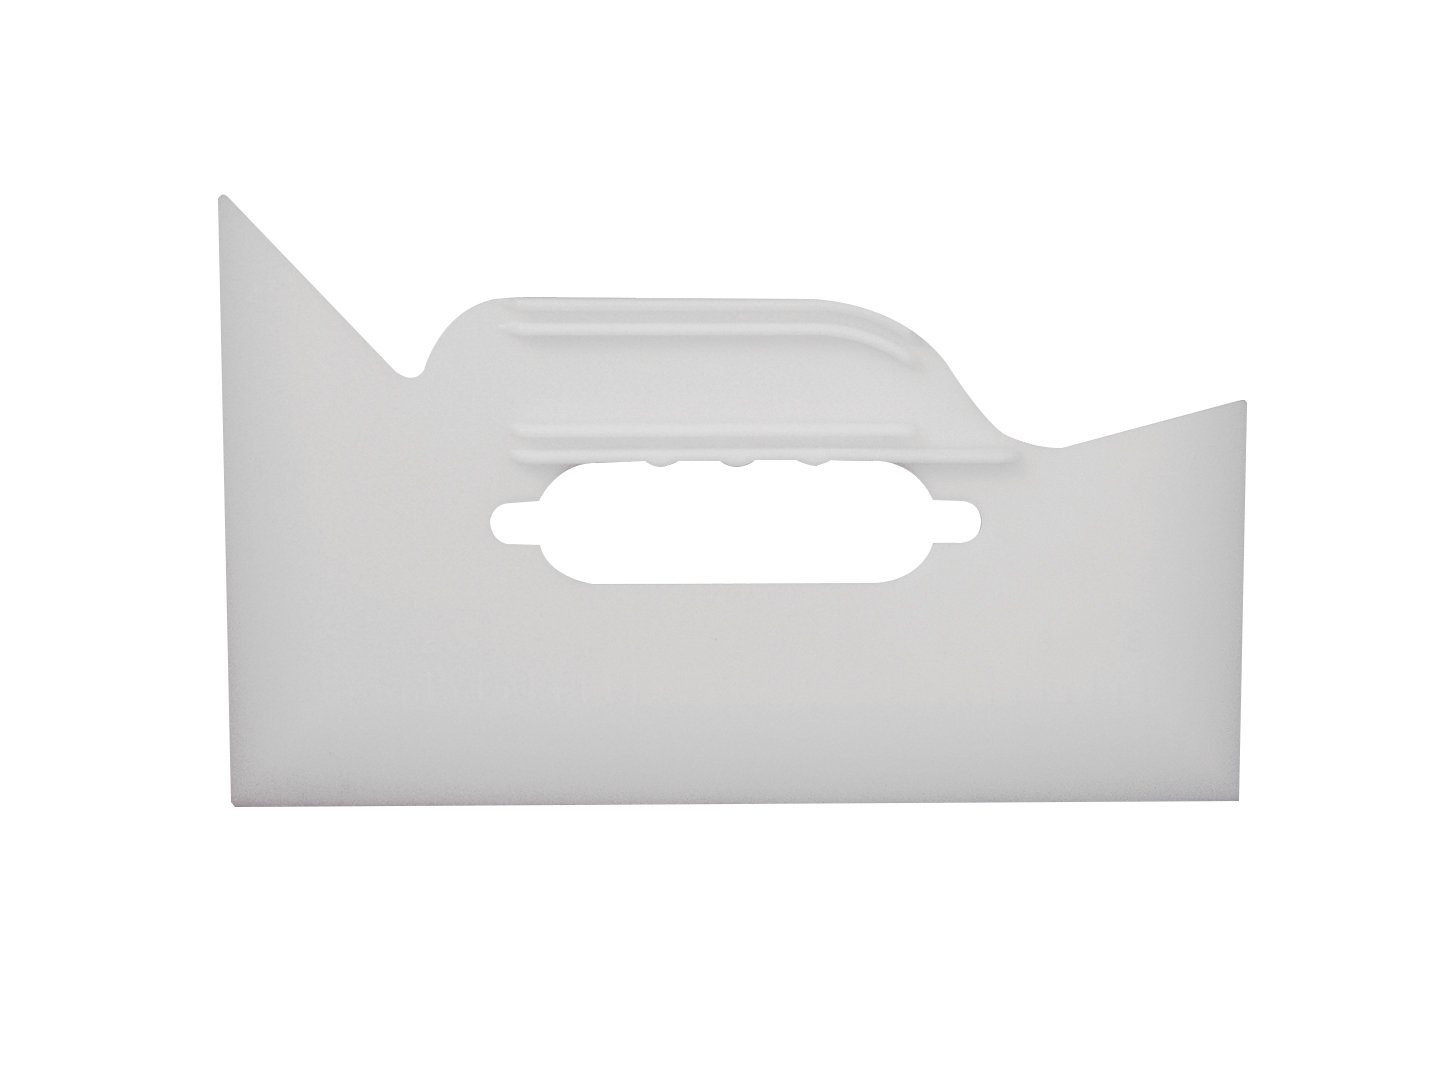 GT190WHITE WHITE 5 WAY TRIM GUIDE WINDOW TINTING FITTING TOOL